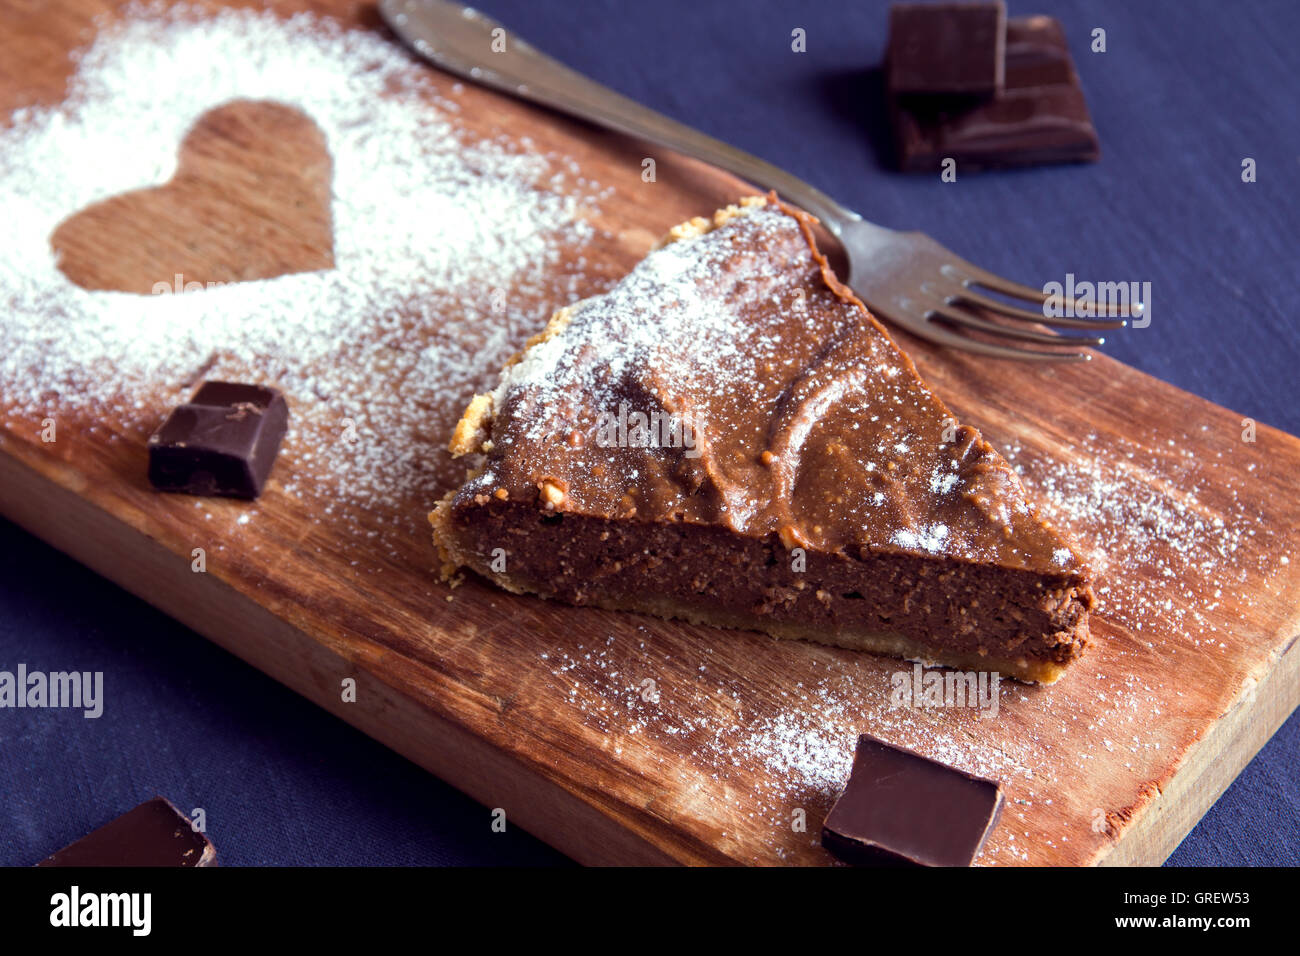 Homemade chocolate cheesecake (pie) on wooden board with heart shape sugar powder (dessert with love) - Stock Image